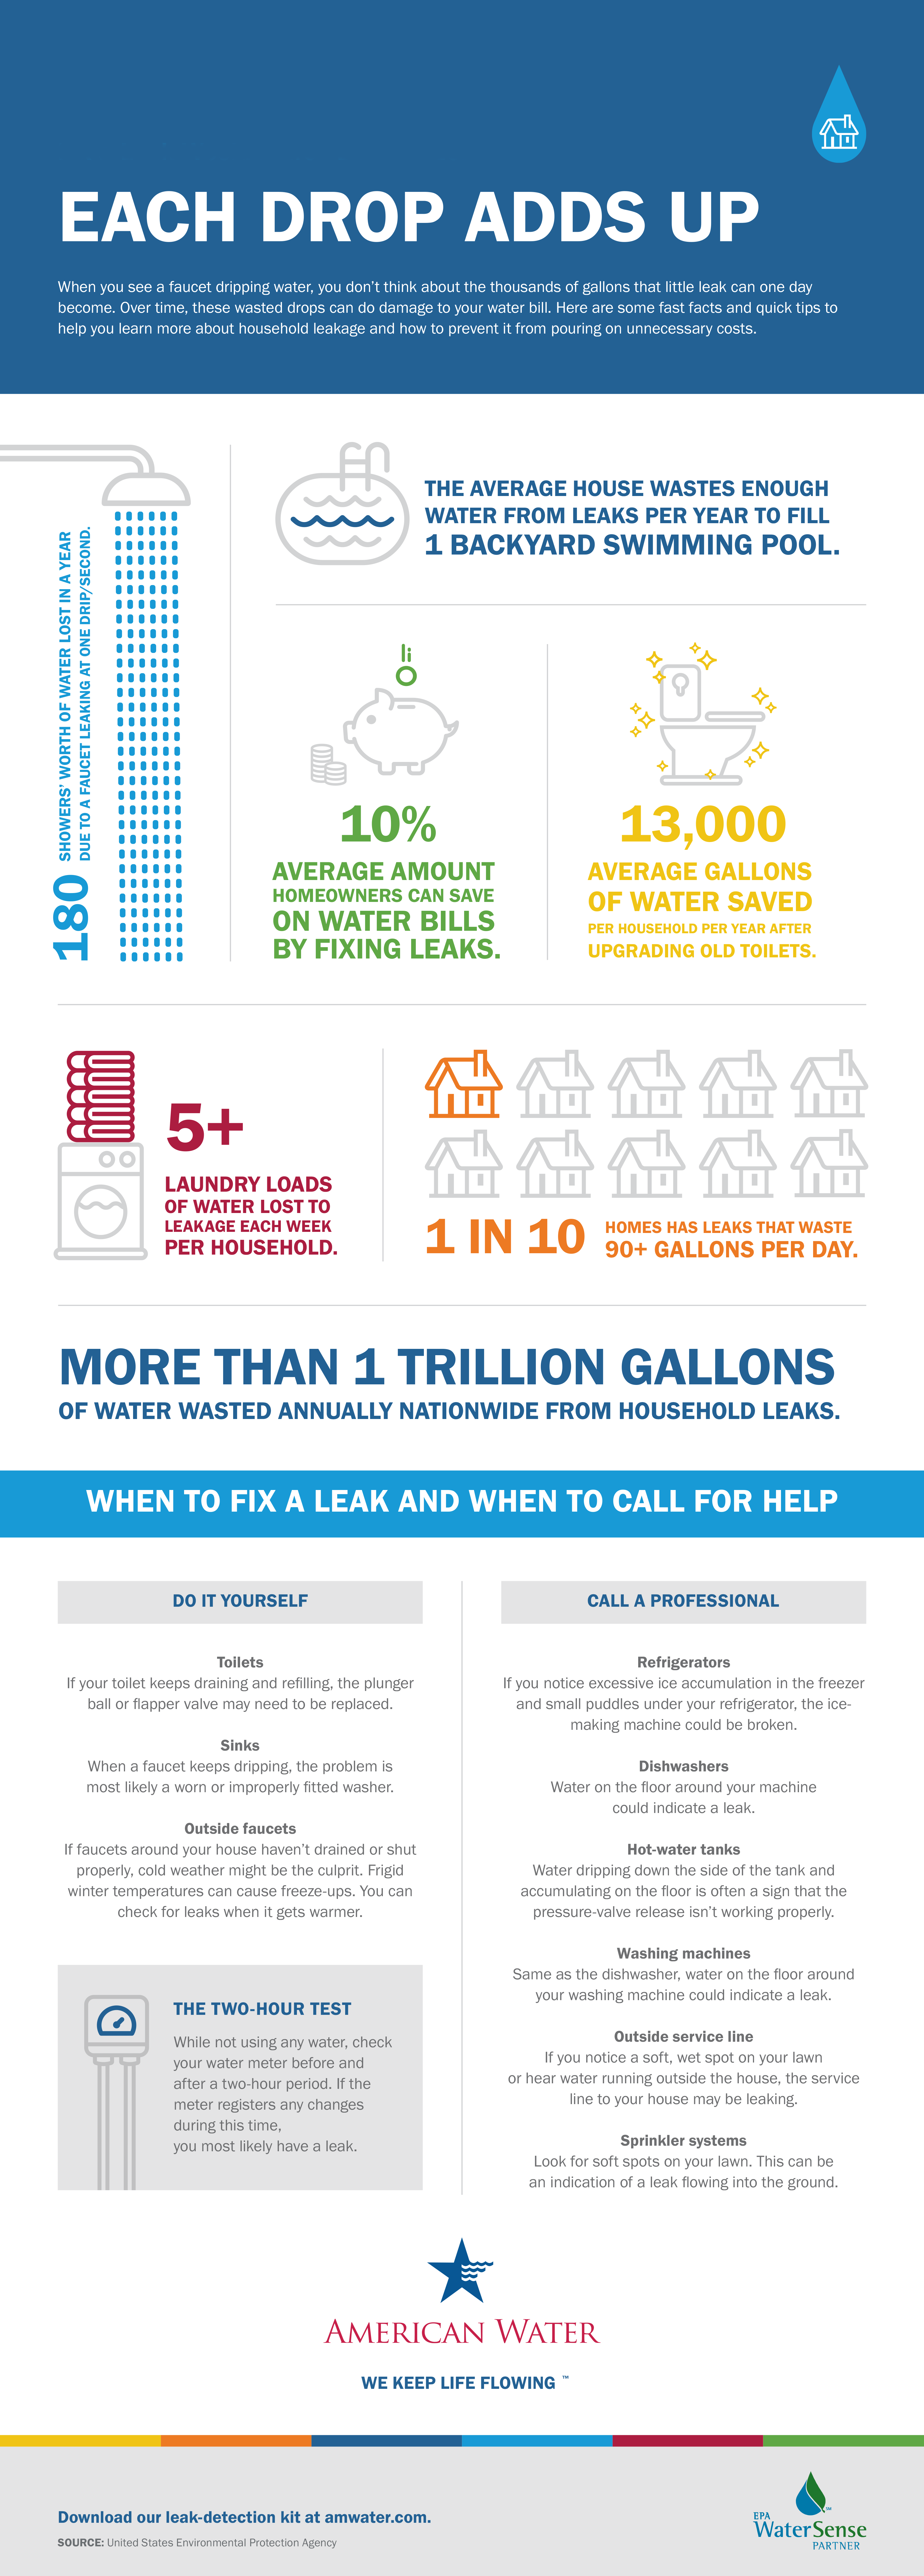 Fix a Leak Week Infographic